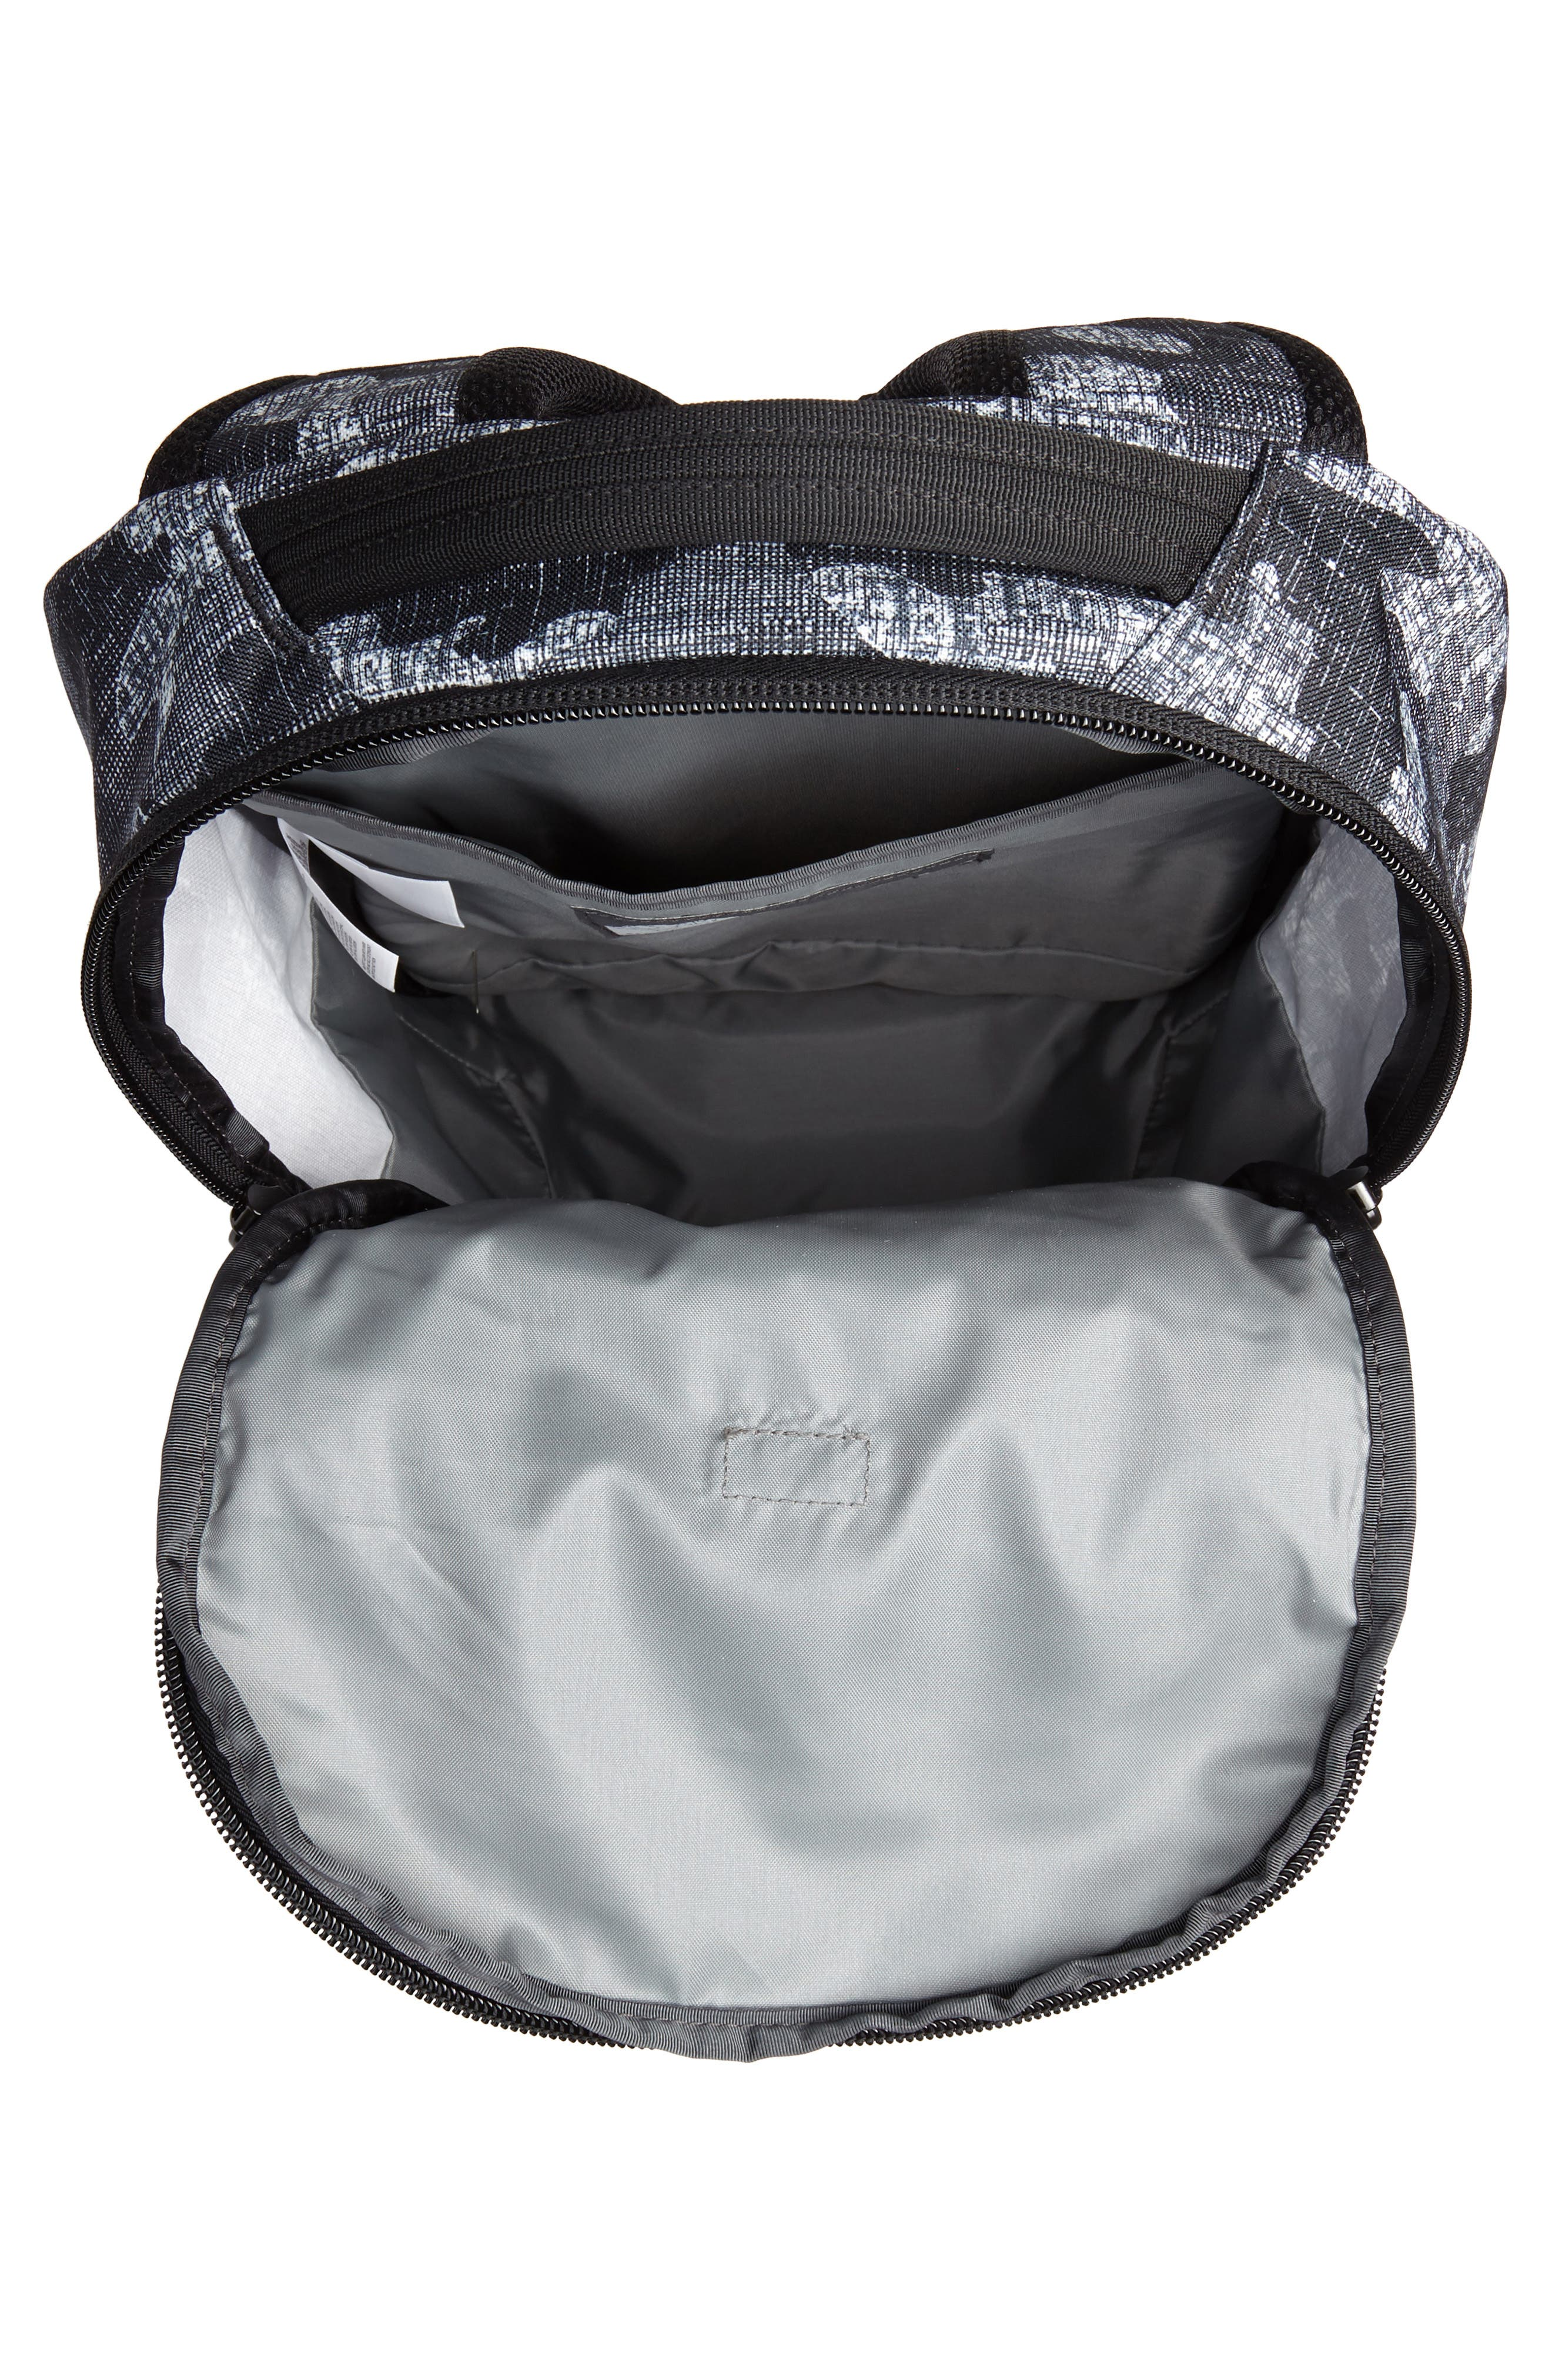 Vault Backpack,                             Alternate thumbnail 4, color,                             Tnf Black Textured Camo Print